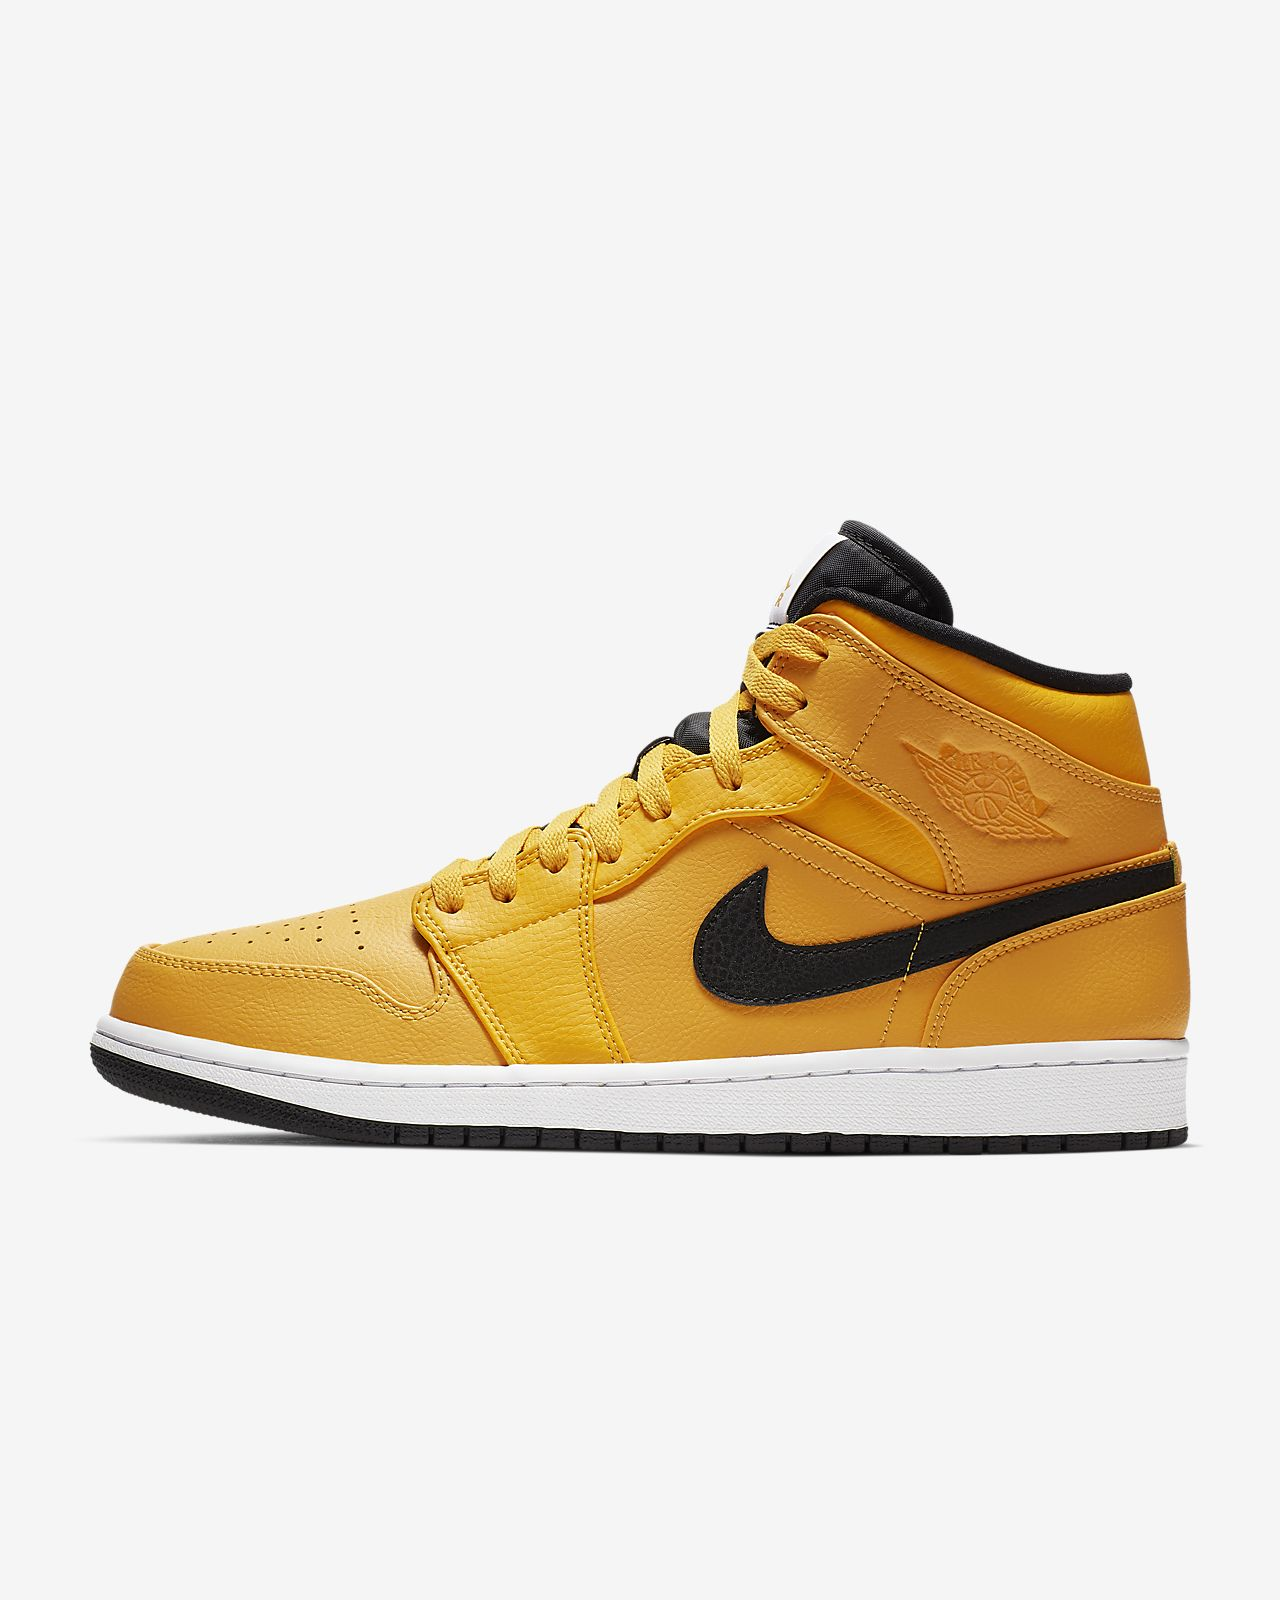 pick up 2dc83 b64e8 ... Air Jordan 1 Mid Men s Shoe